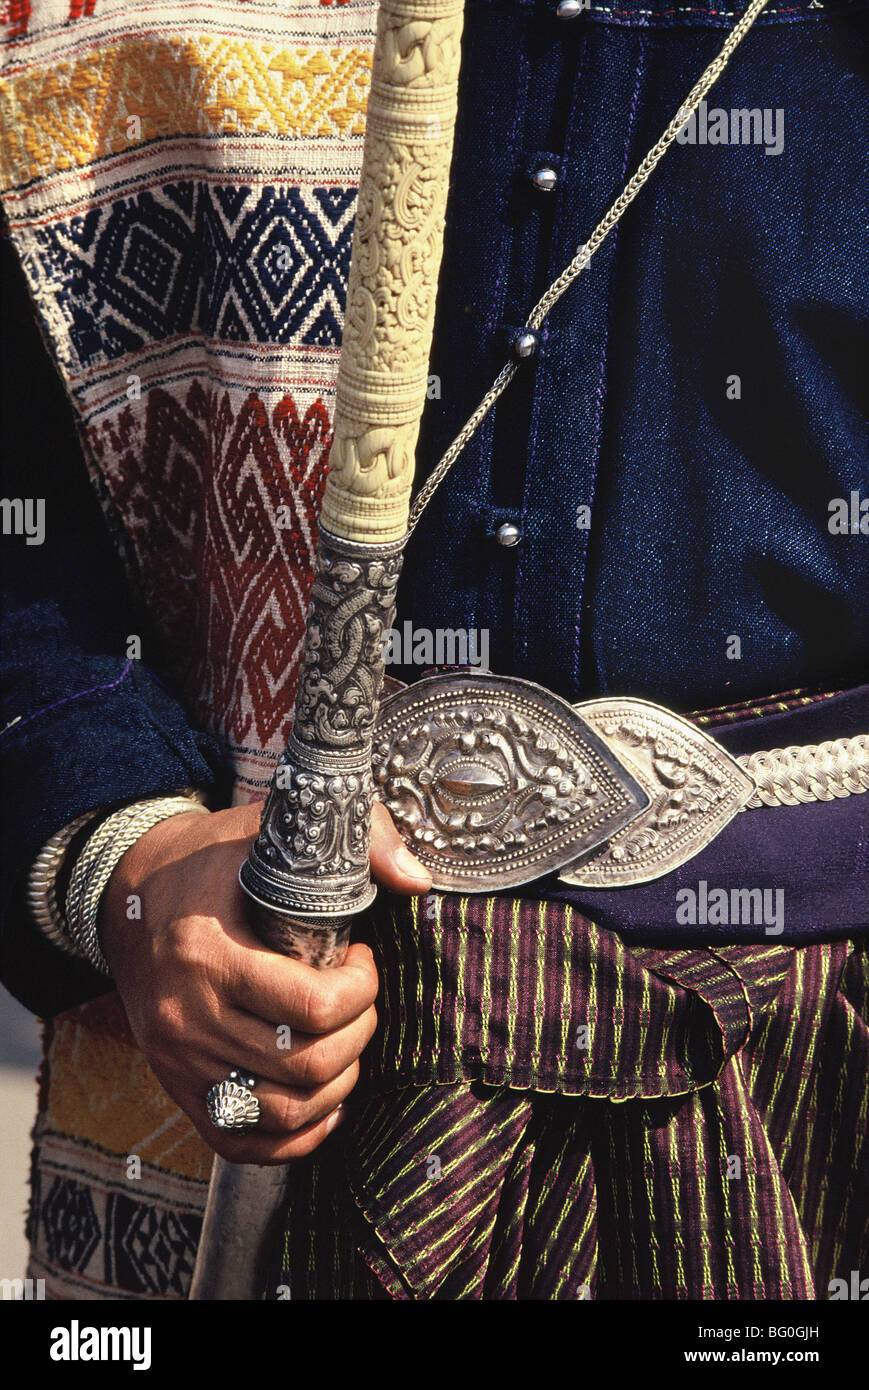 Lanna Silver Sword on a man wearing Tai Lu patterend sash over ceremonial dress, Northern Thailand, Southeast Asia, - Stock Image